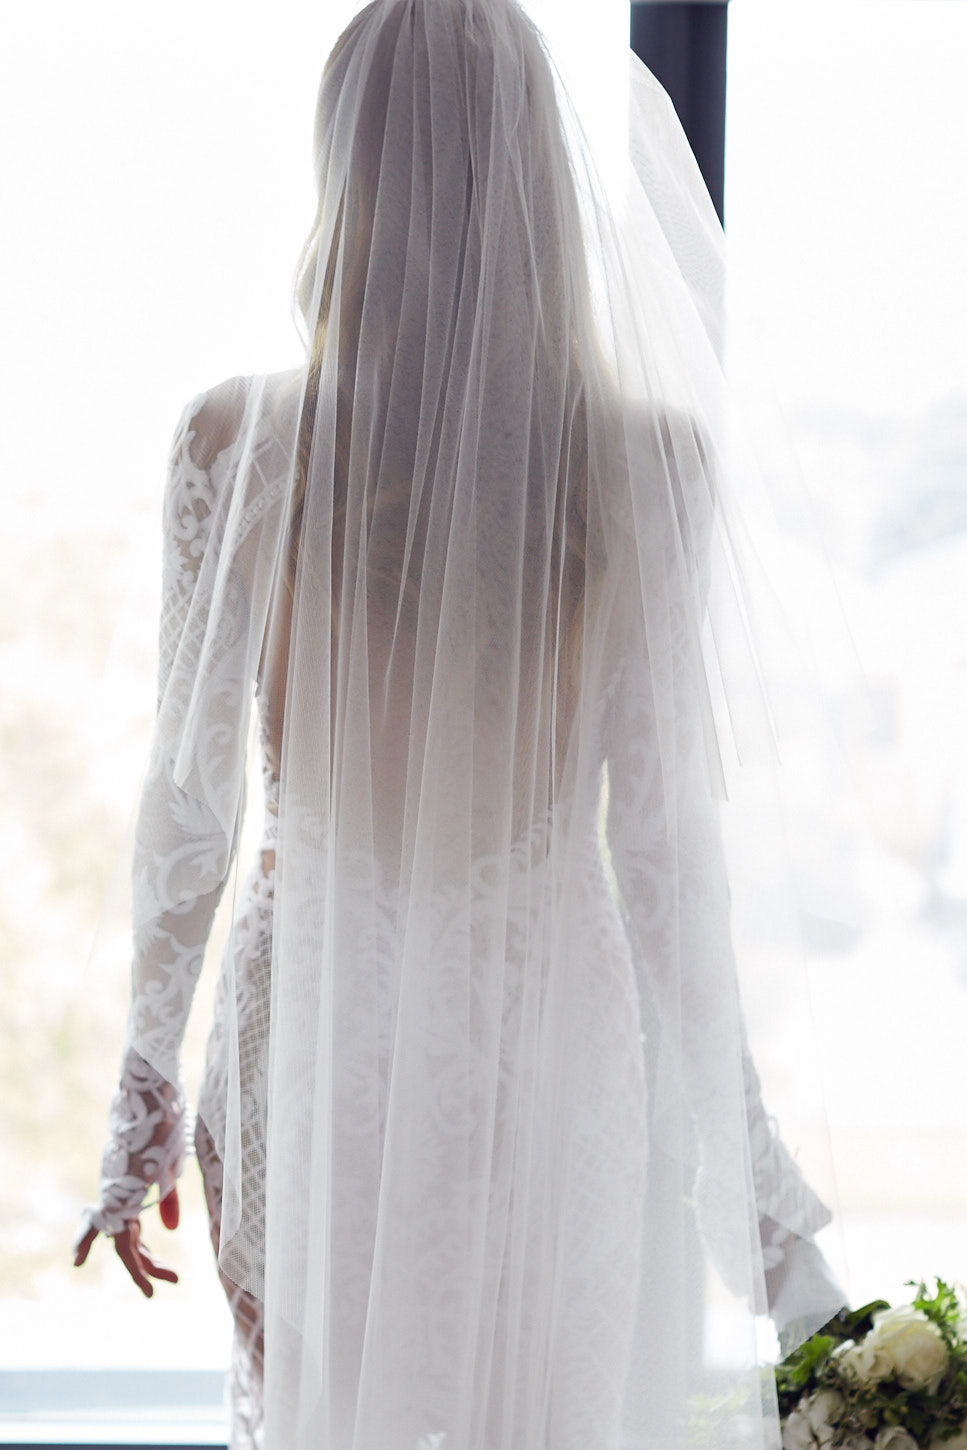 Stones-wedding-photos - J'Aton Couture wedding dress by Lost In Love Photography